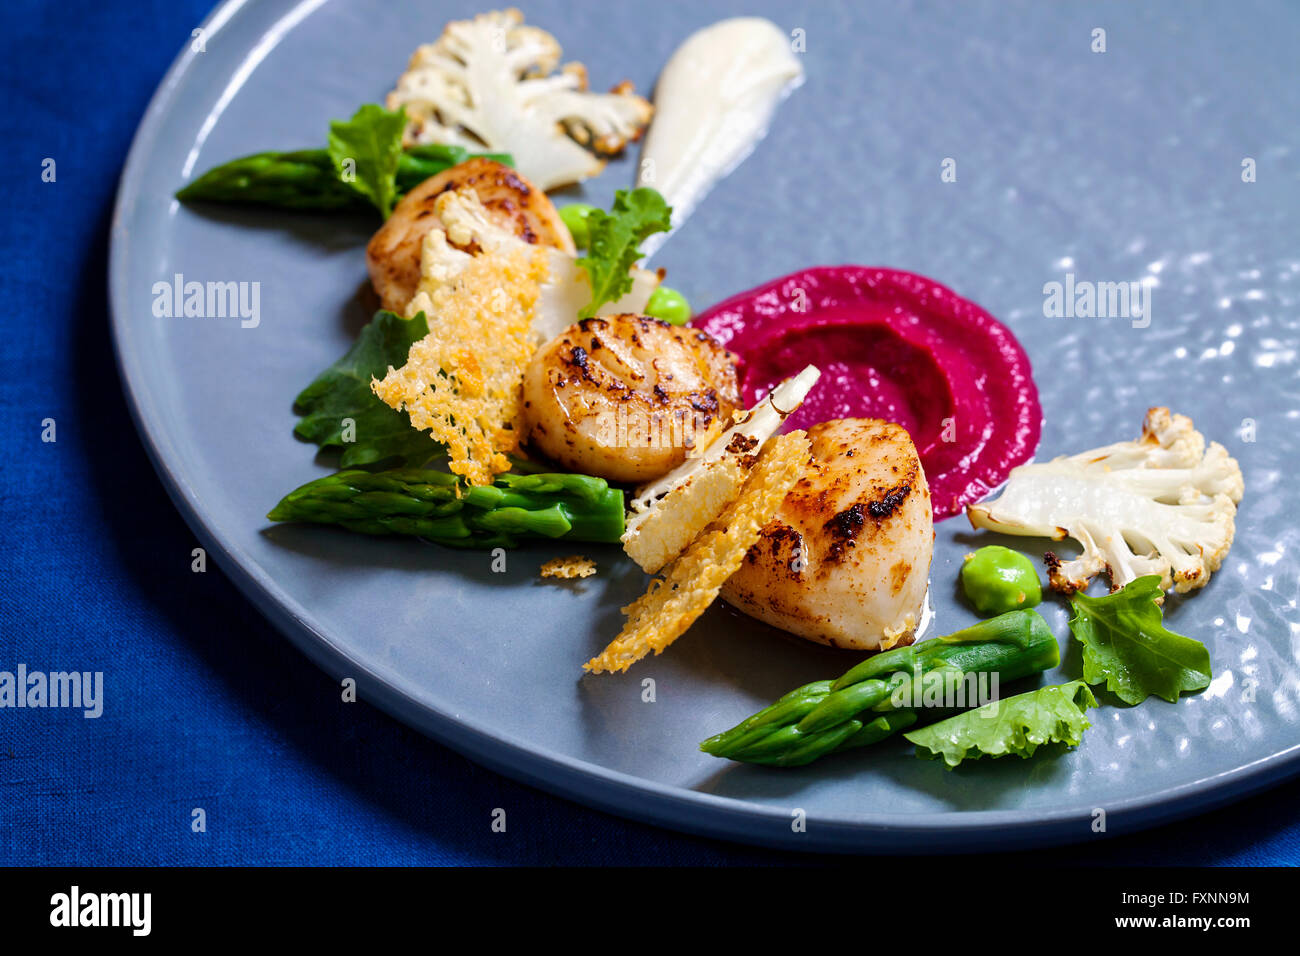 Scallops with beetroot and cauliflower puree, asparagus and parmesan crisp - Stock Image